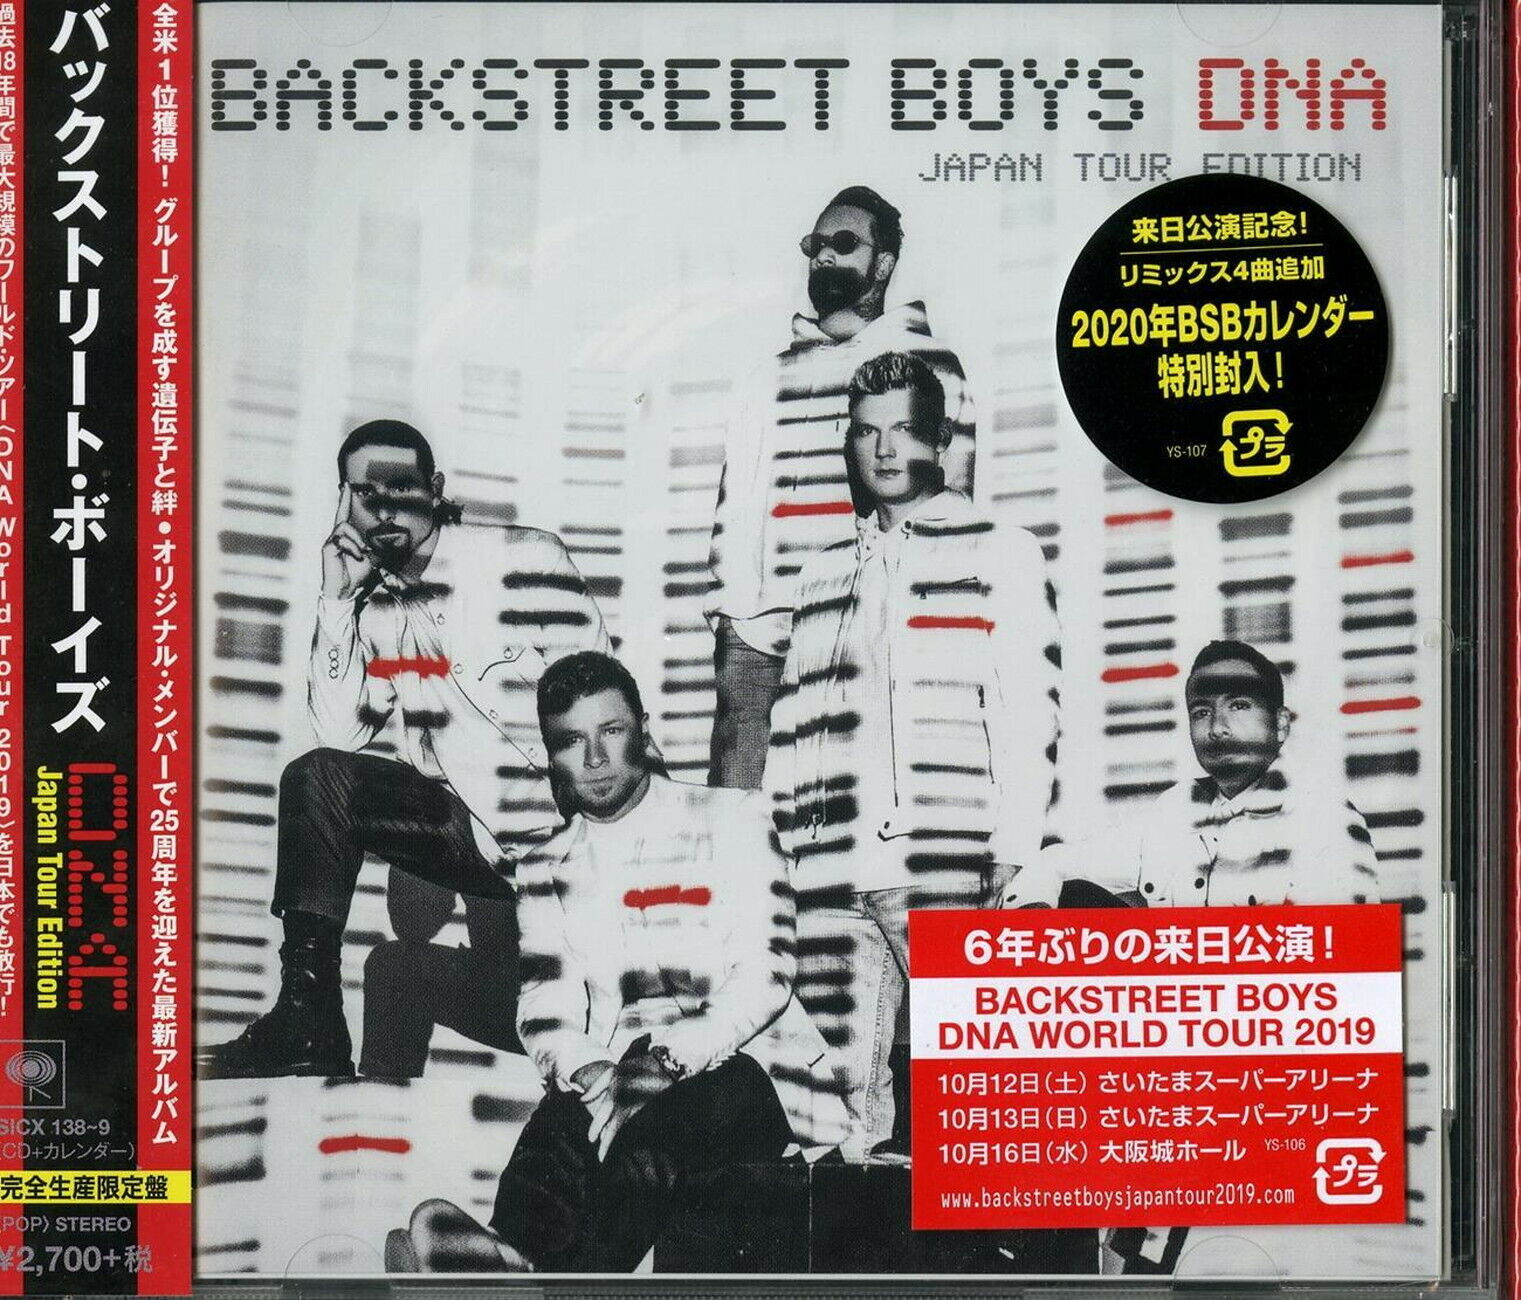 Backstreet Boys New Album 2020.Backstreet Boys Dna Japan Tour Edition Limited Release Cd Sicx 138 4547366421392